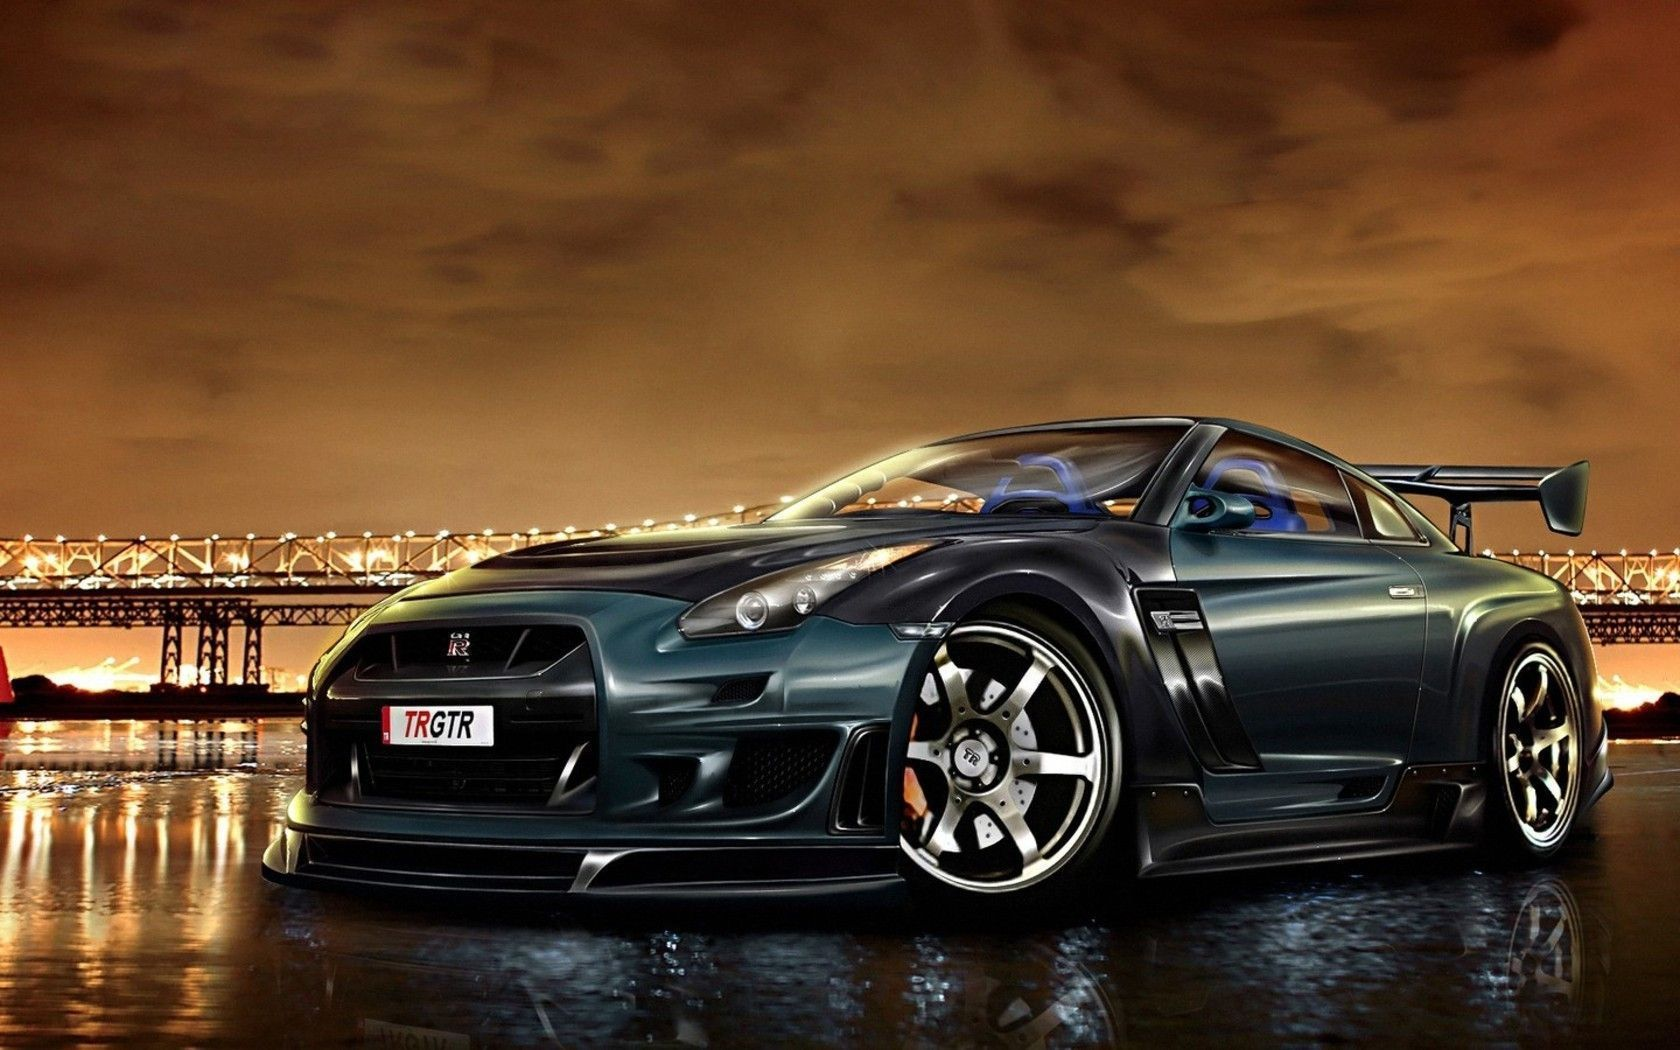 Superieur Nissan GTR Wallpaper | HD Car Wallpapers